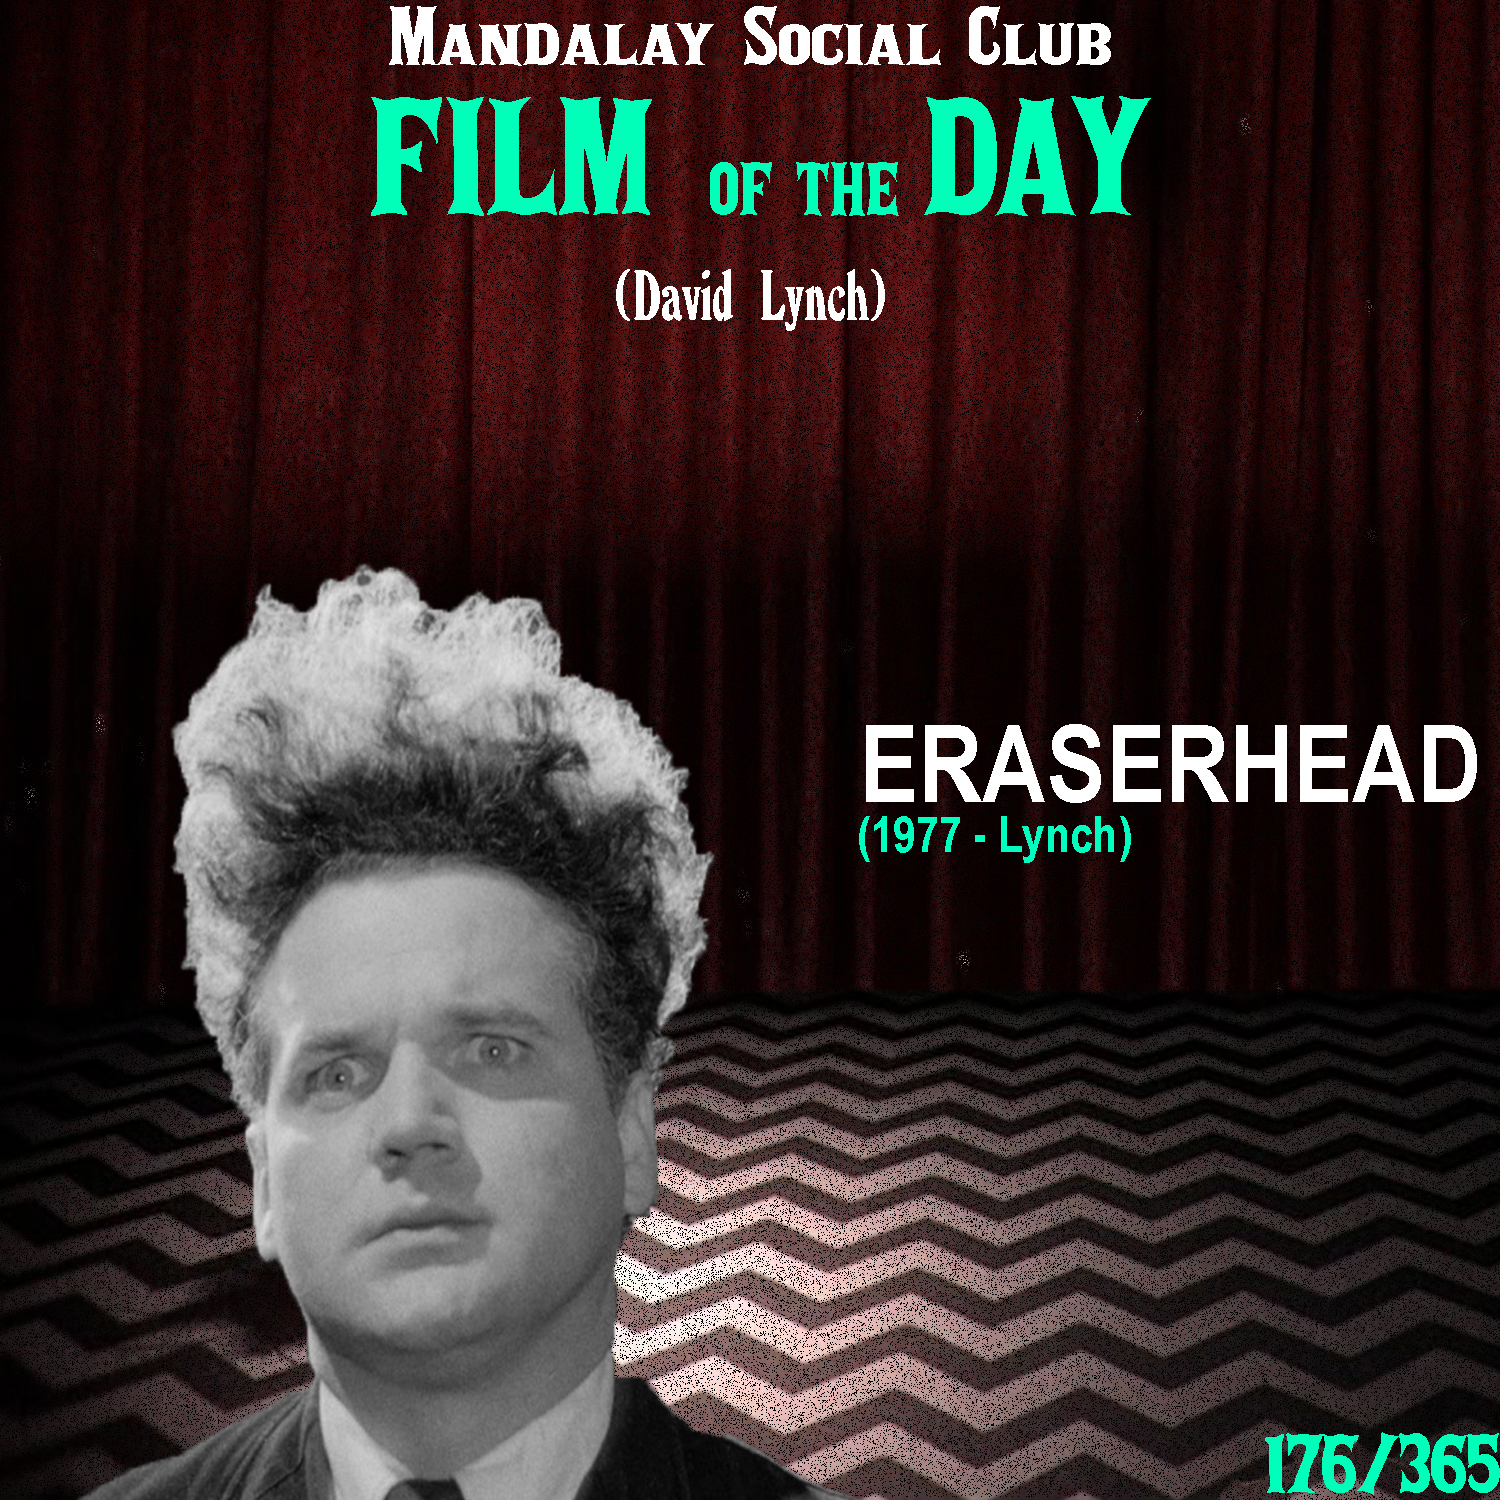 "ERASERHEAD     (dir. David Lynch)   David Lynch's nightmarish debut  Eraserhead  is what he calls his ""most spiritual film."" Made over the course of 5 years,  Eraserhead  is a surreal take on the acceptance and trials of fatherhood.  Jack Nance stars as Henry Spencer, an awkward young man who finds out that his girlfriend Mary X had a child. Completely unaware, he's told that he is the father and that he and Mary must get married before he can see the baby. However, this 'baby' his more of an alien hybrid creature that wails and hollers all throughout the night, creating intense friction in Henry's personal and romantic life.  It's pretty difficult to give a standard synopsis to any of Lynch's films, but  Eraserhead  might actually be the toughest. Lynch, who's known for his surreal imagery, created a black and white world in  Eraserhead  where the natural horrors of the human experience are exaggerated the point of absurdity. This film is the perfect stepping stone into the world of David Lynch, as it also acted as the platform for launching the prolifically weird career of one of the finest filmmakers of the generation!    5/5     WATCH: The Criterion Channel, iTunes (RENT)"